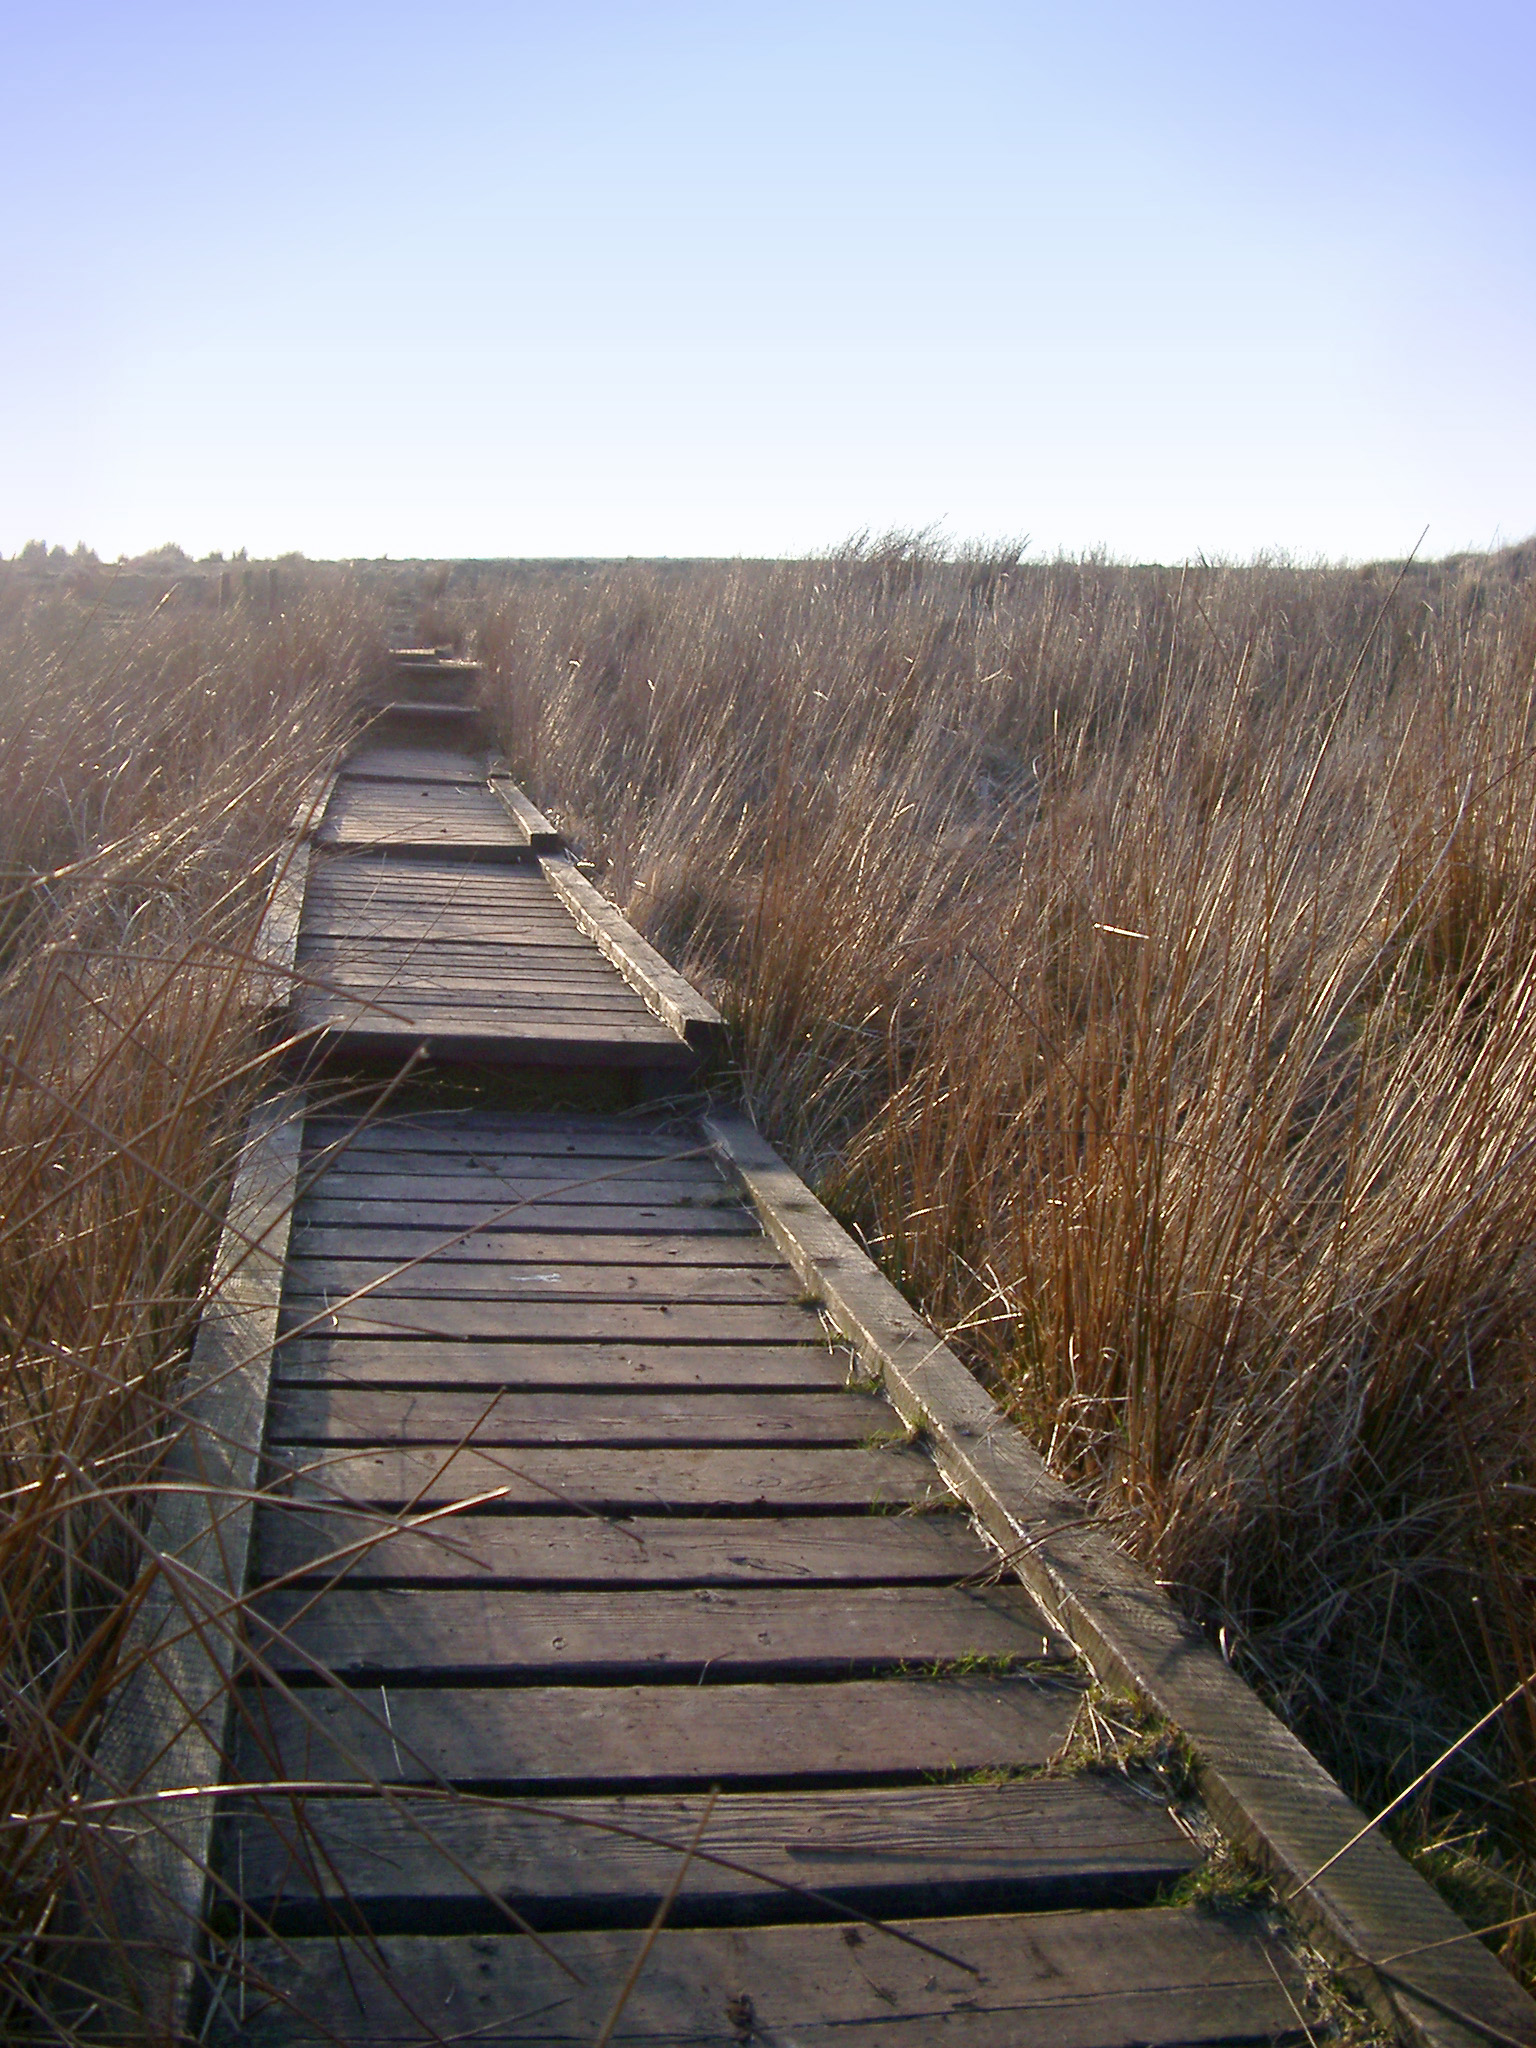 Walkway with Tall Brown Grasses on the Sides at Winter Hill in England. Captured with Lighter Blue Sky Background.